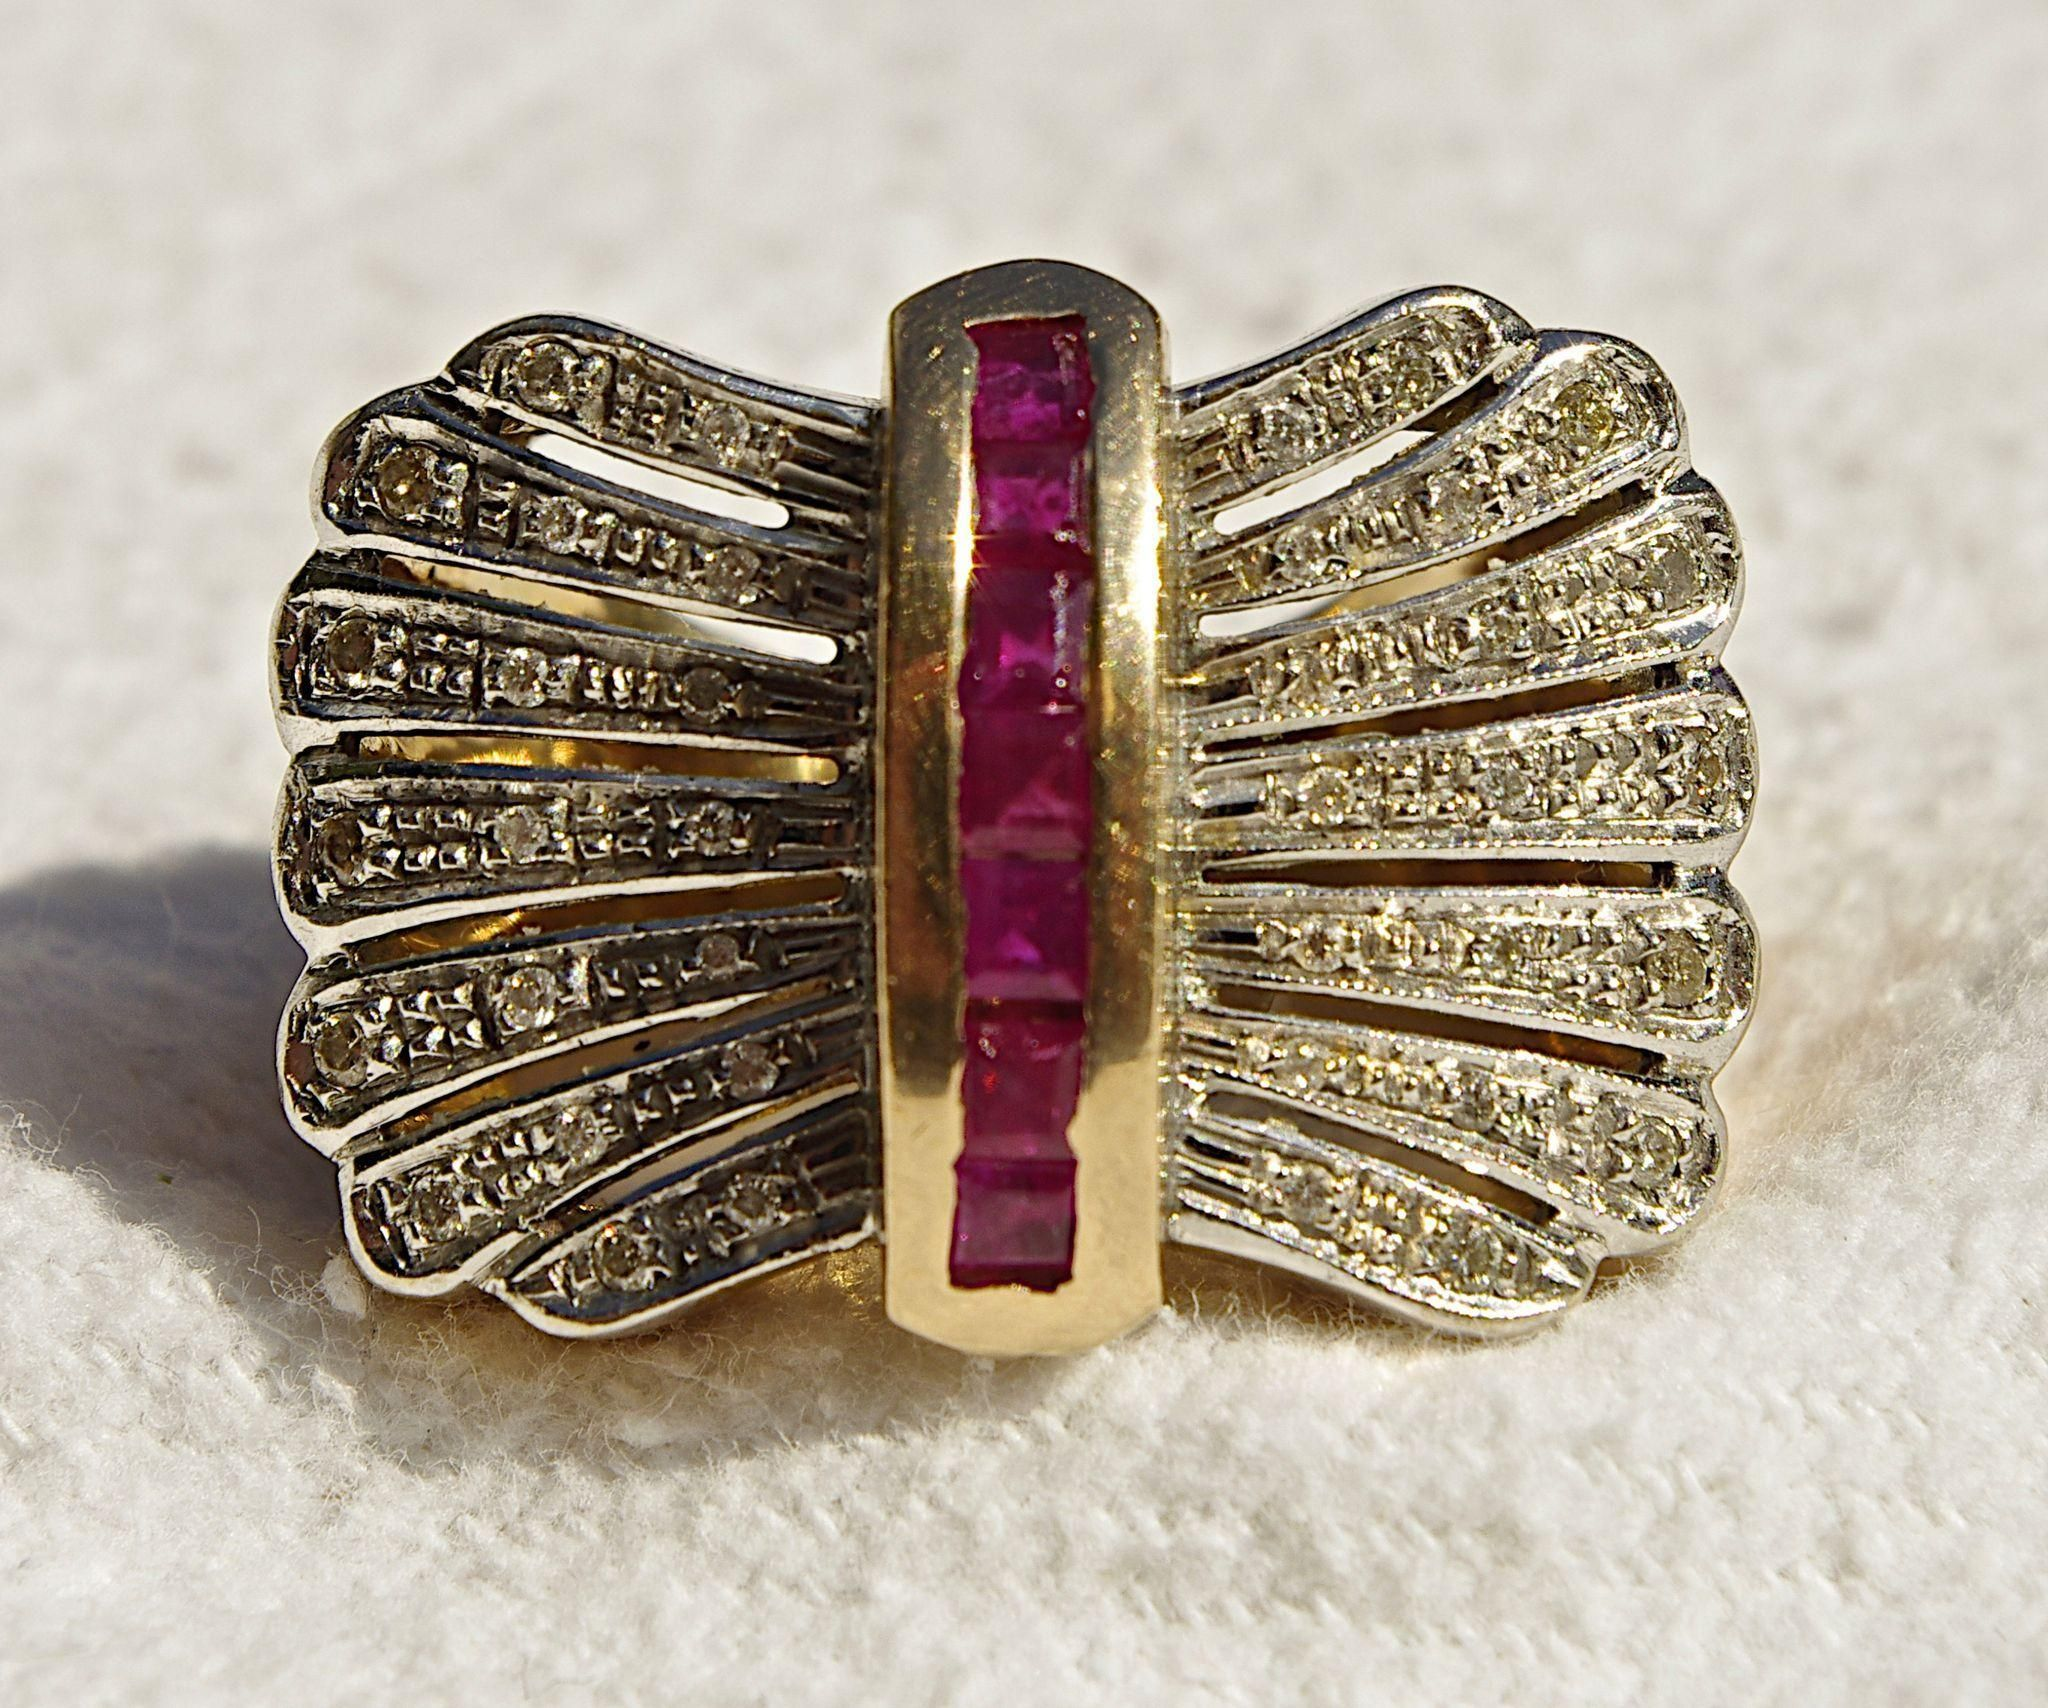 A Vintage 1940's Retro Art Diamond and Ruby Bow Shaped Cocktail Ring